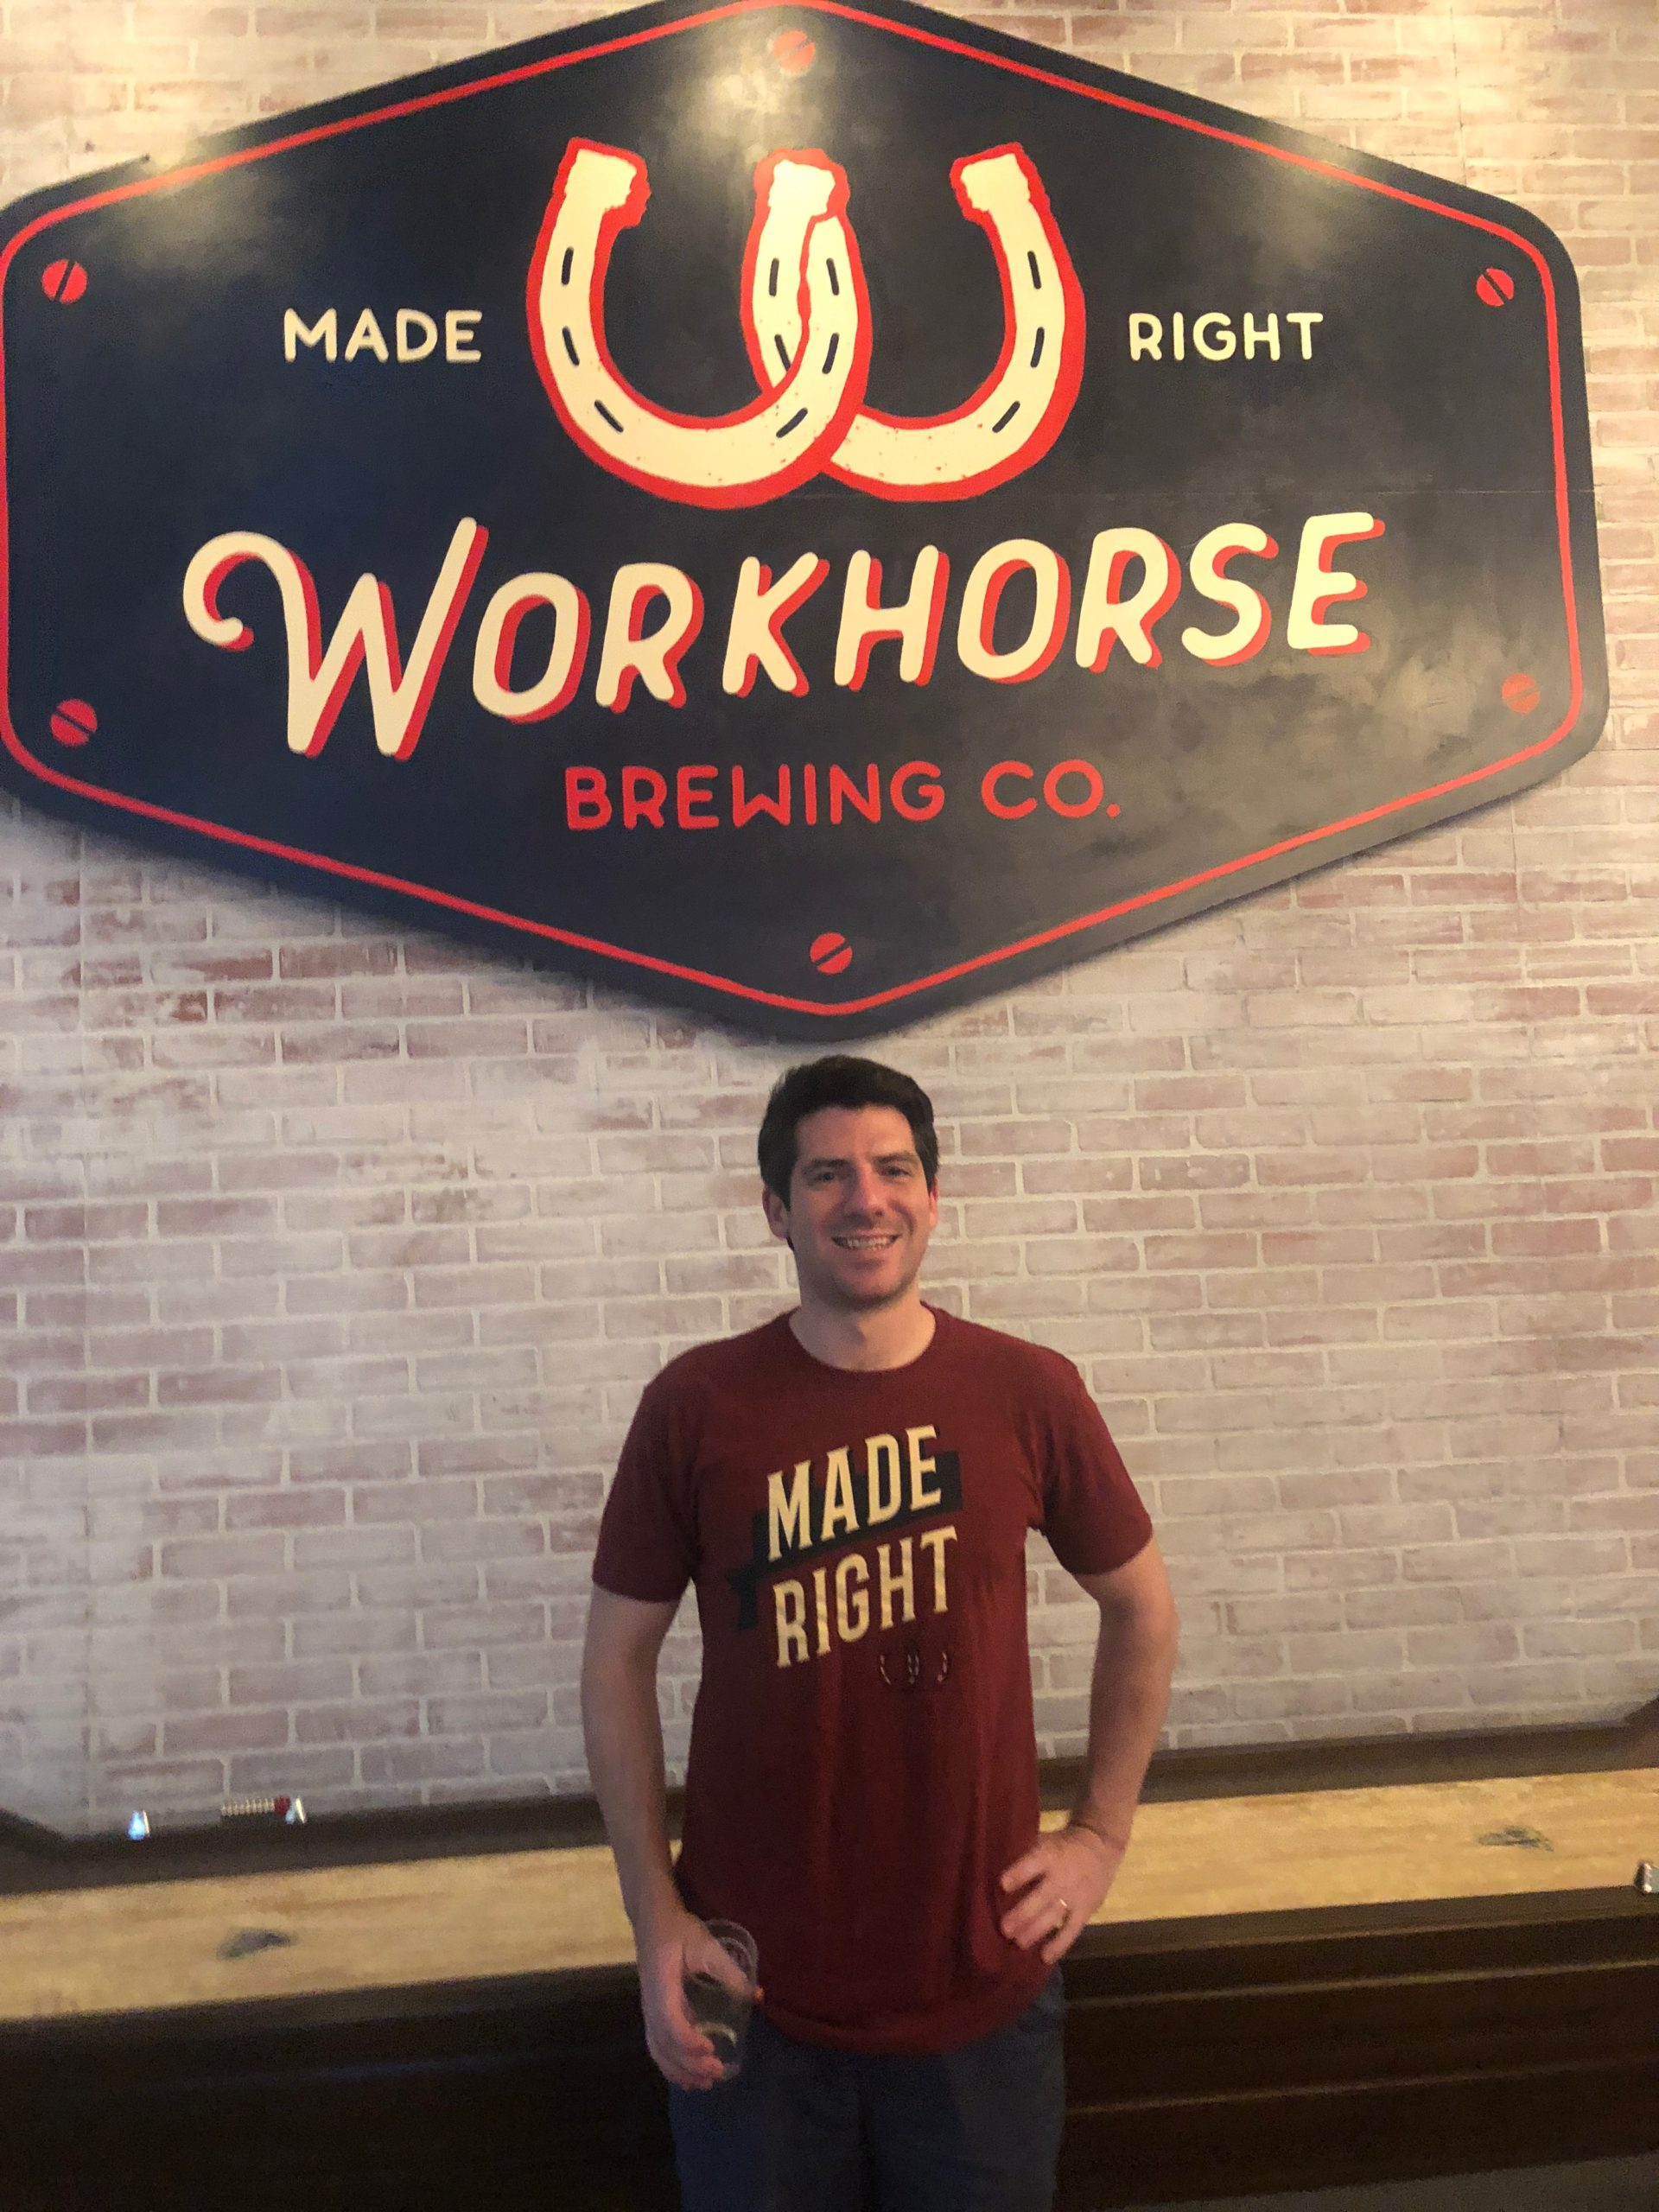 Workhorse Brewing Co. gets job done in King of Prussia